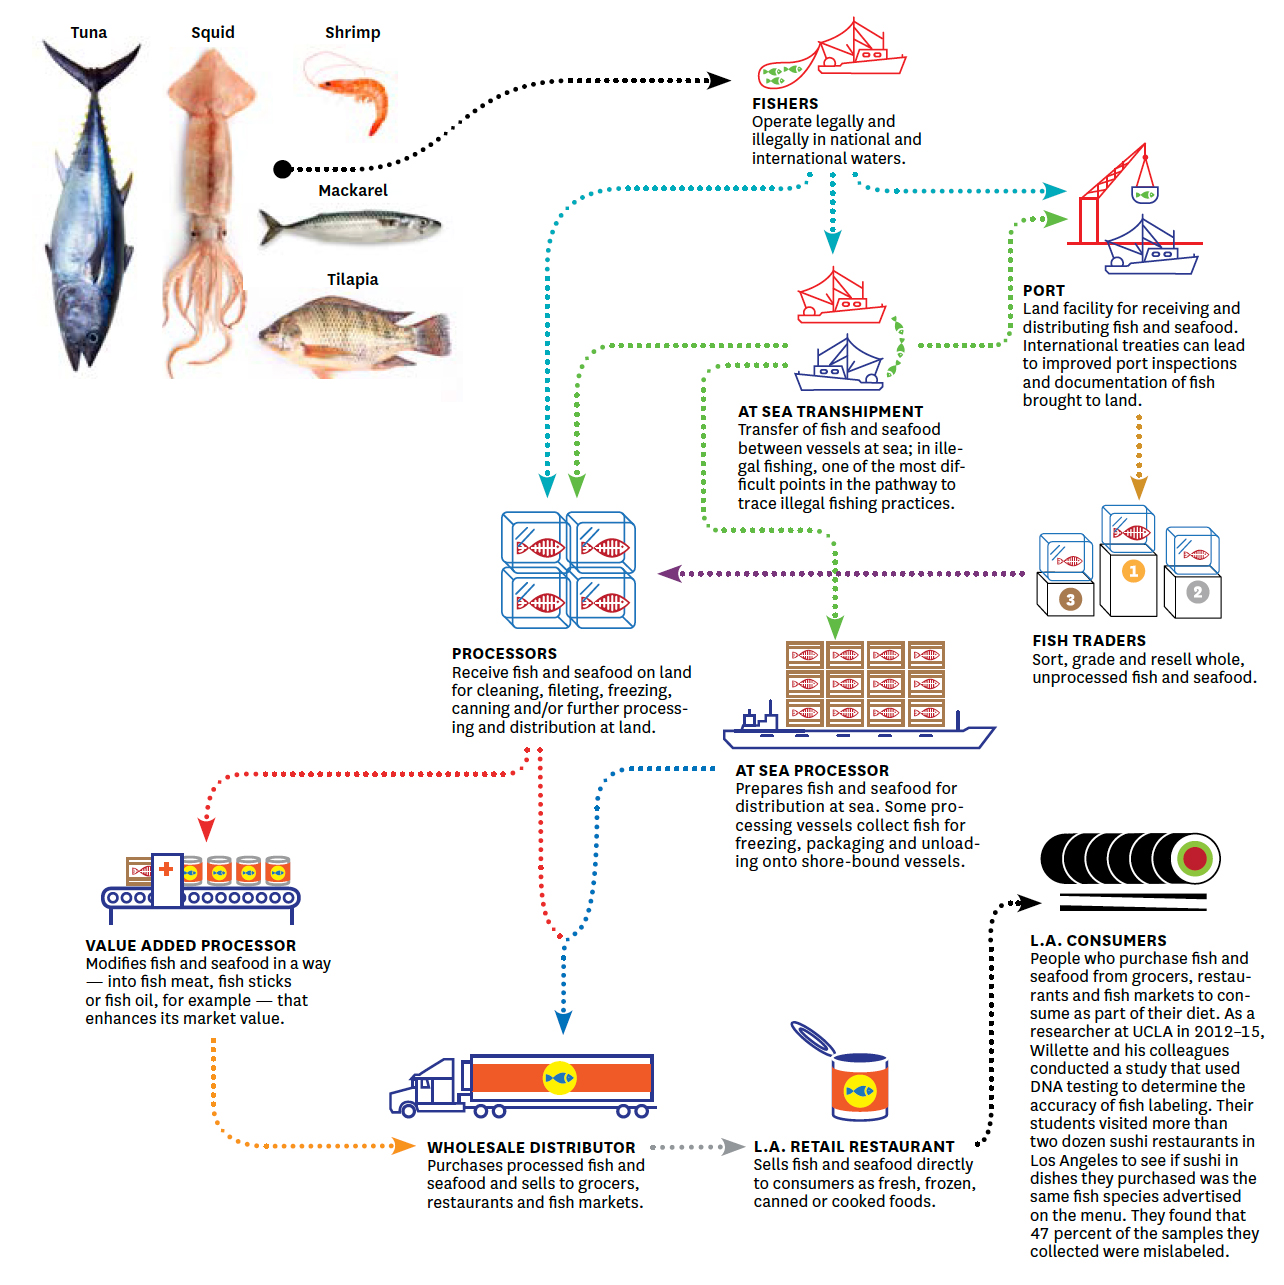 Fish Fraud Diagram